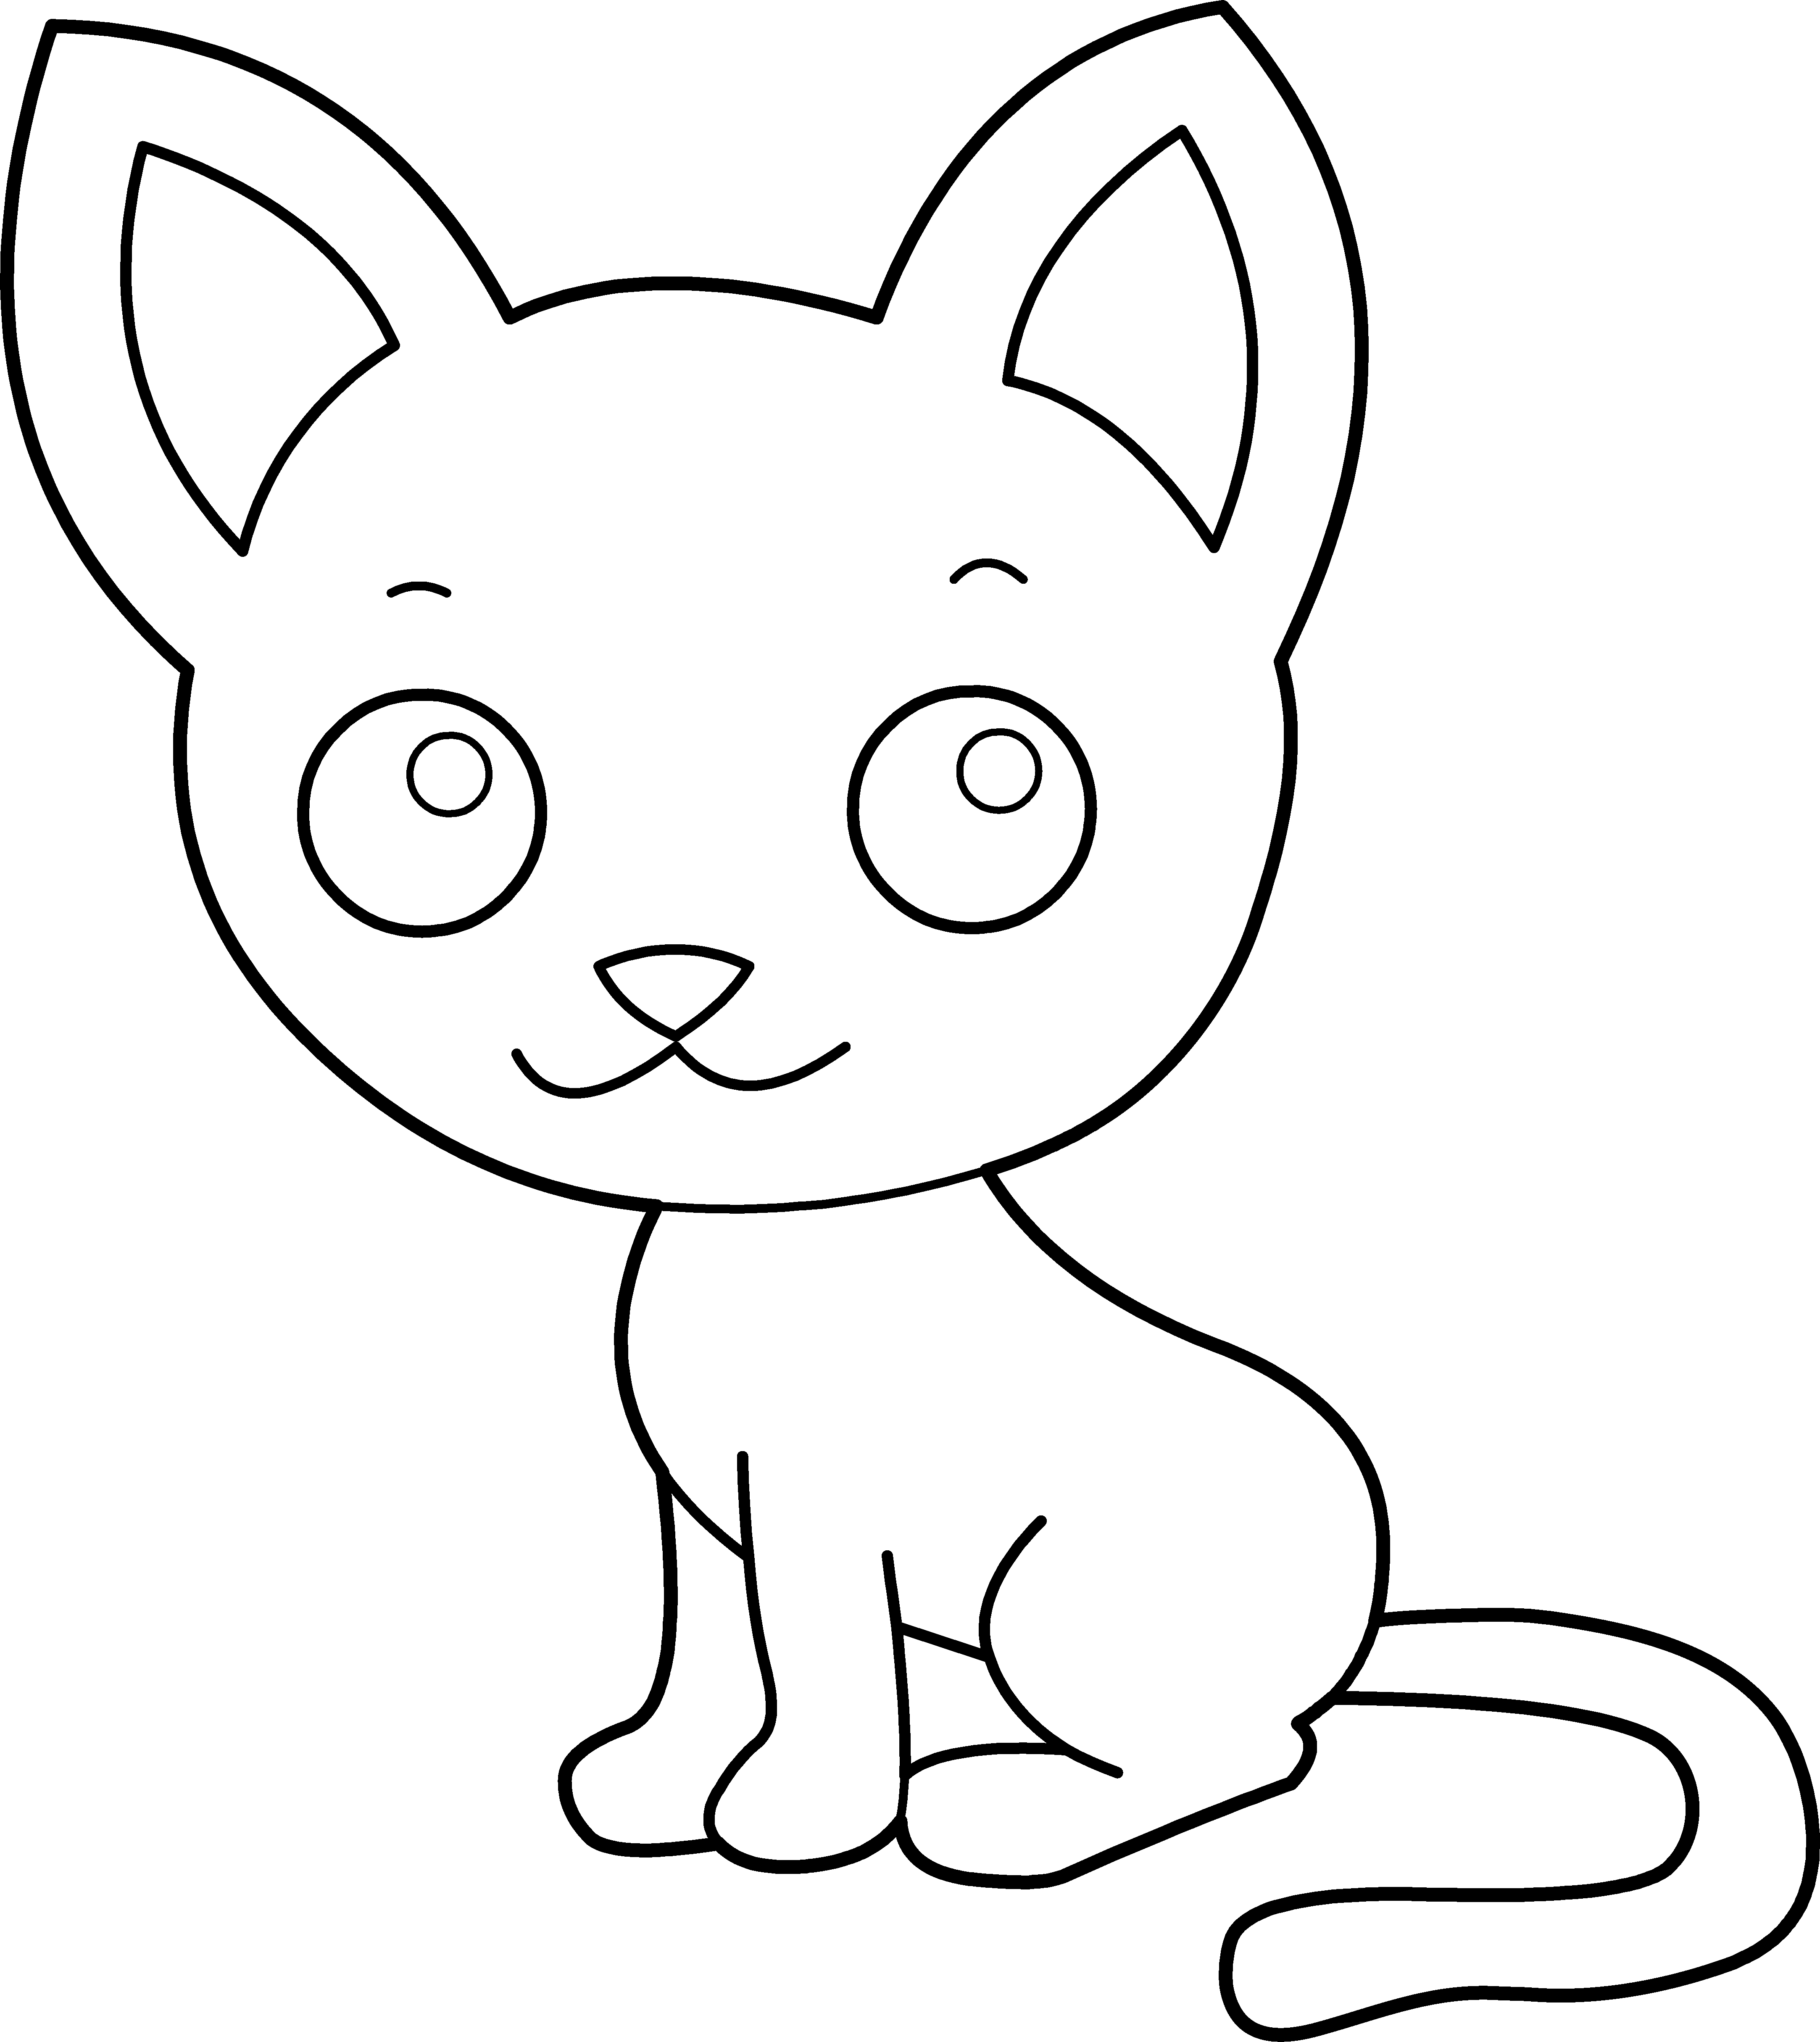 cute kitten colouring pages cute kitten coloring pages hellokidscom kitten colouring pages cute